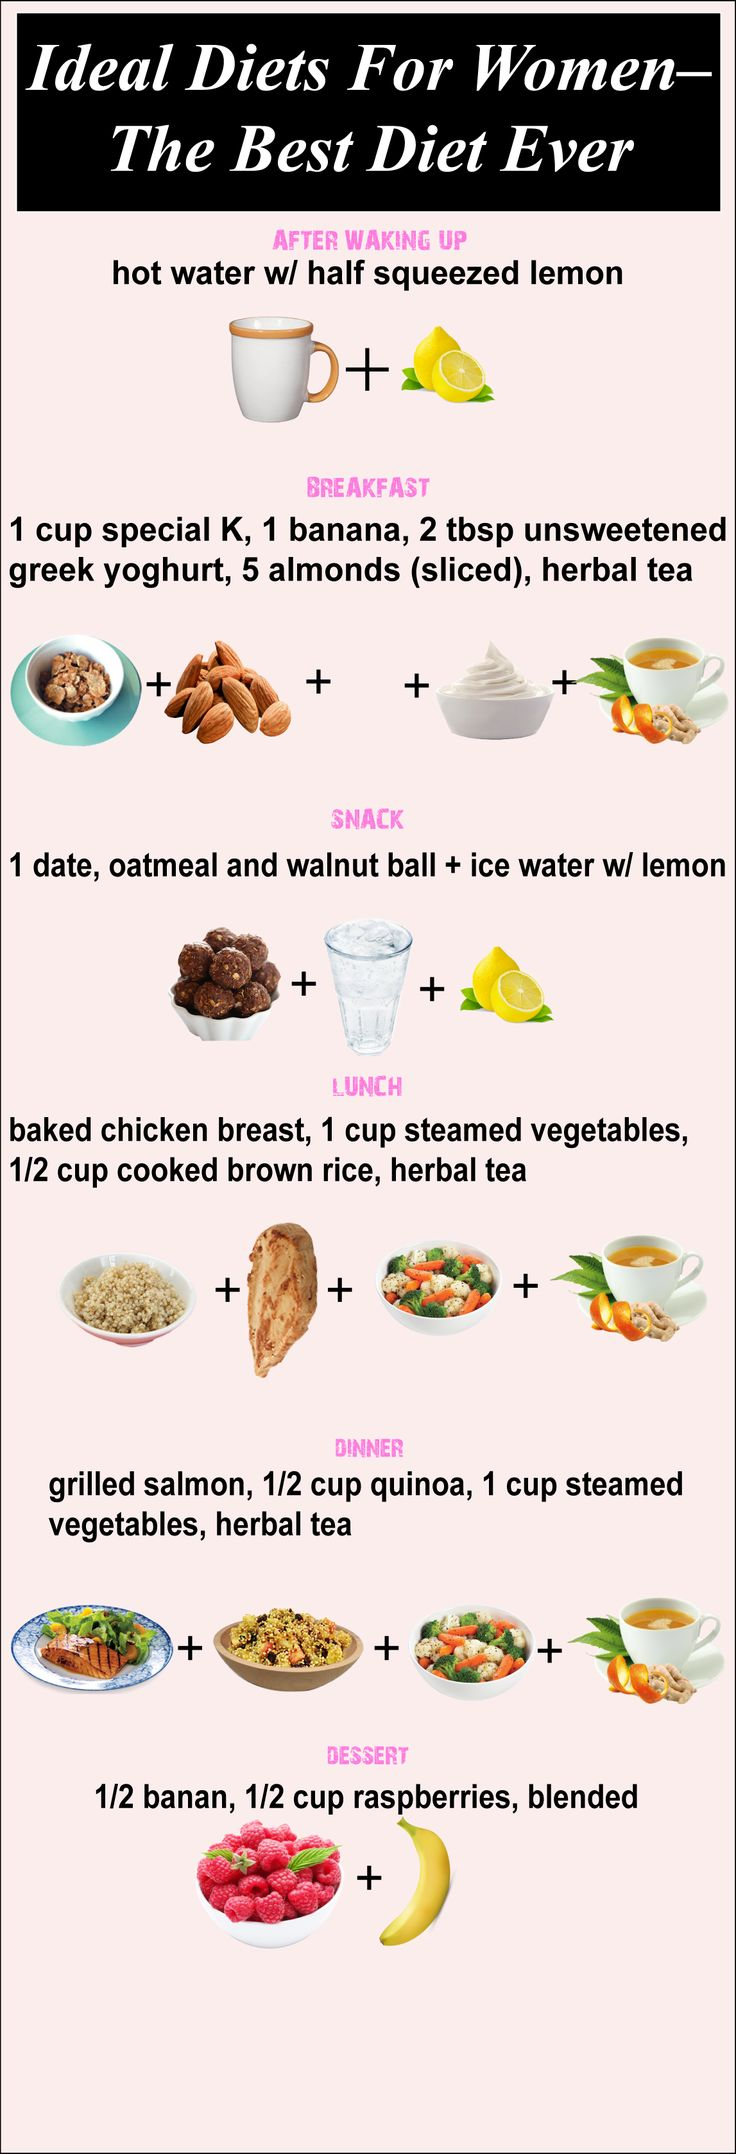 Daily diet for good health - Best 25 Pcos Diet Plan Ideas On Pinterest Pcos Meal Plan Pcos Diet And Pcos Food